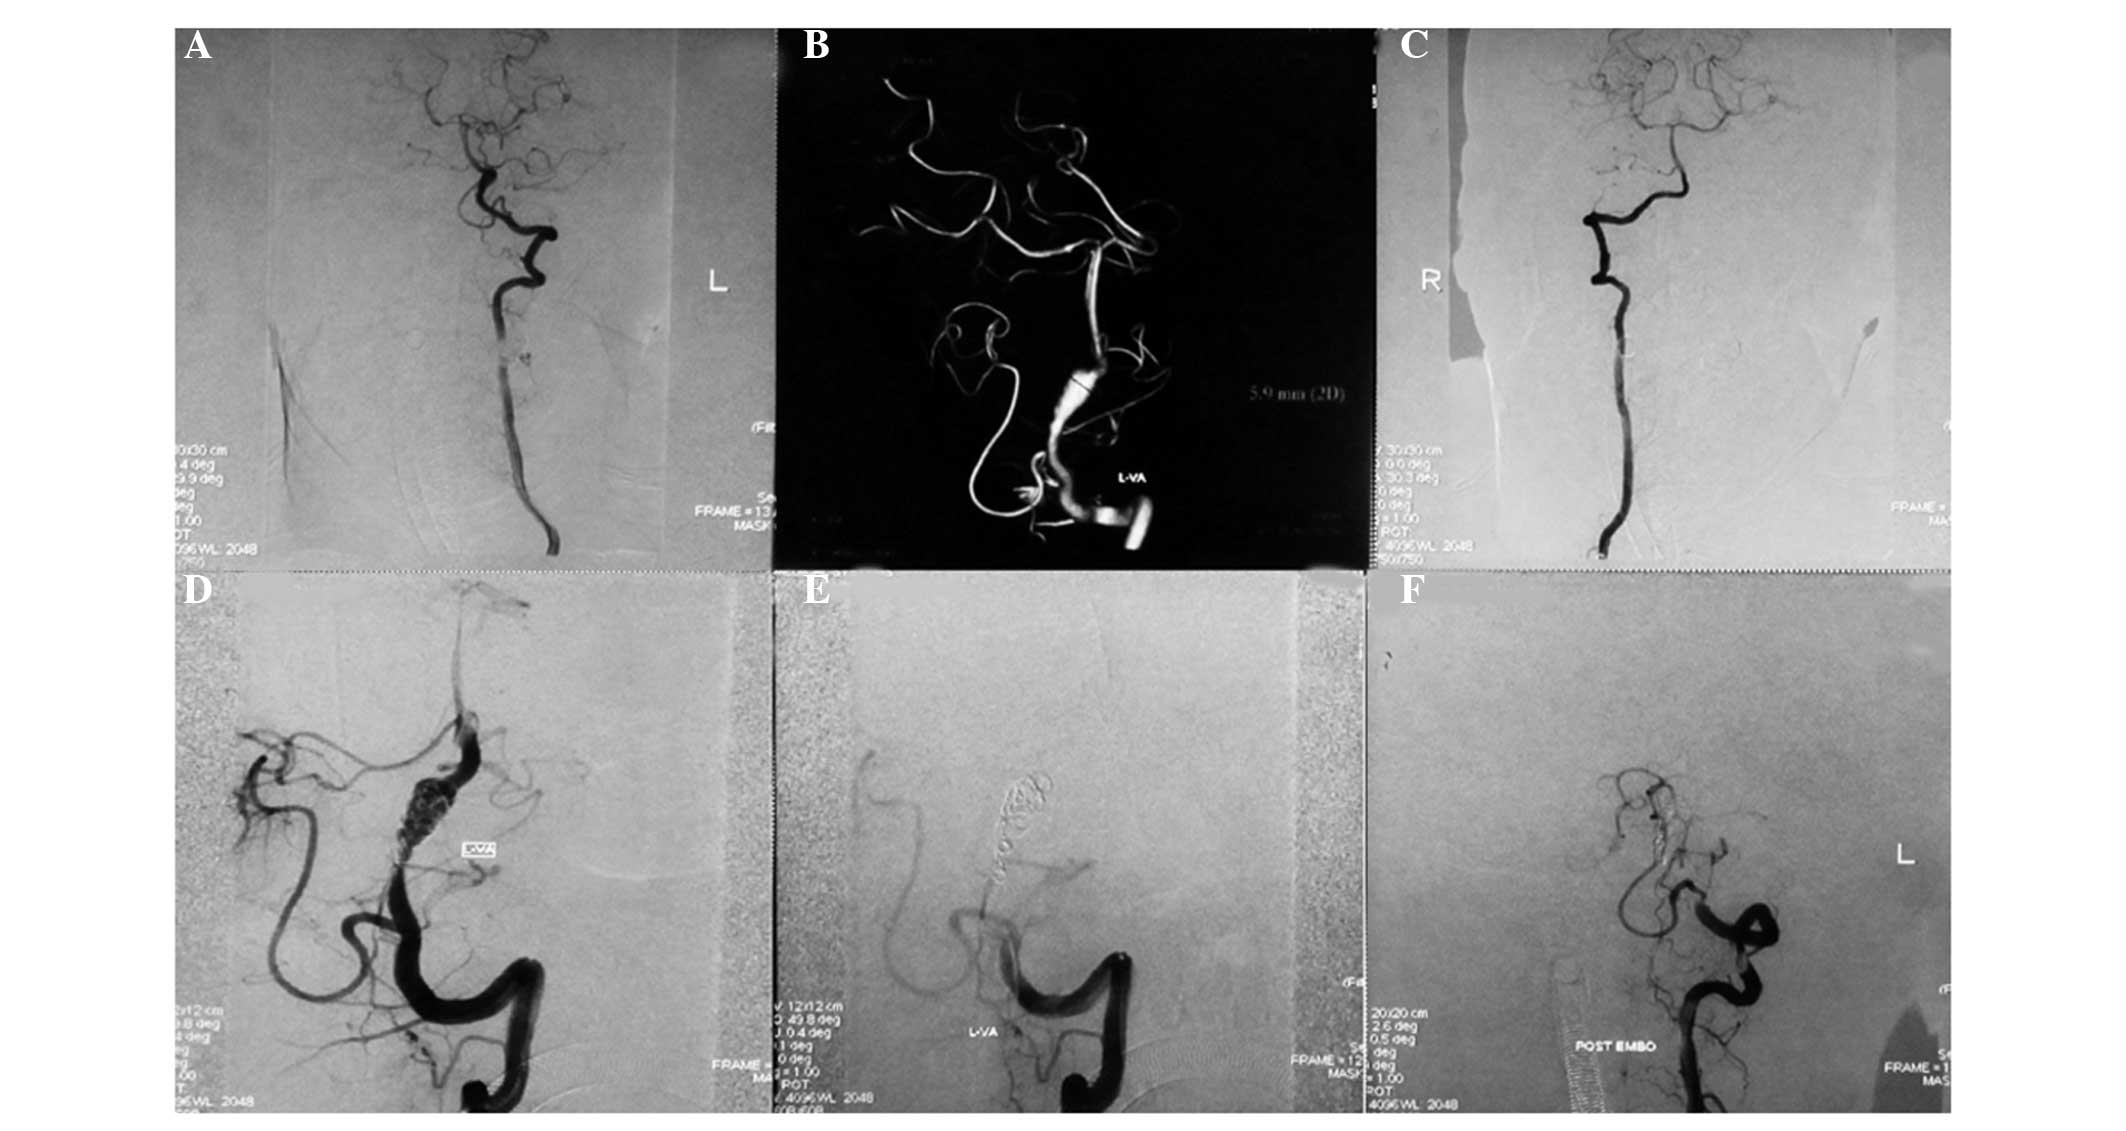 Endovascular Interventional Therapy And Classification Of Vertebral